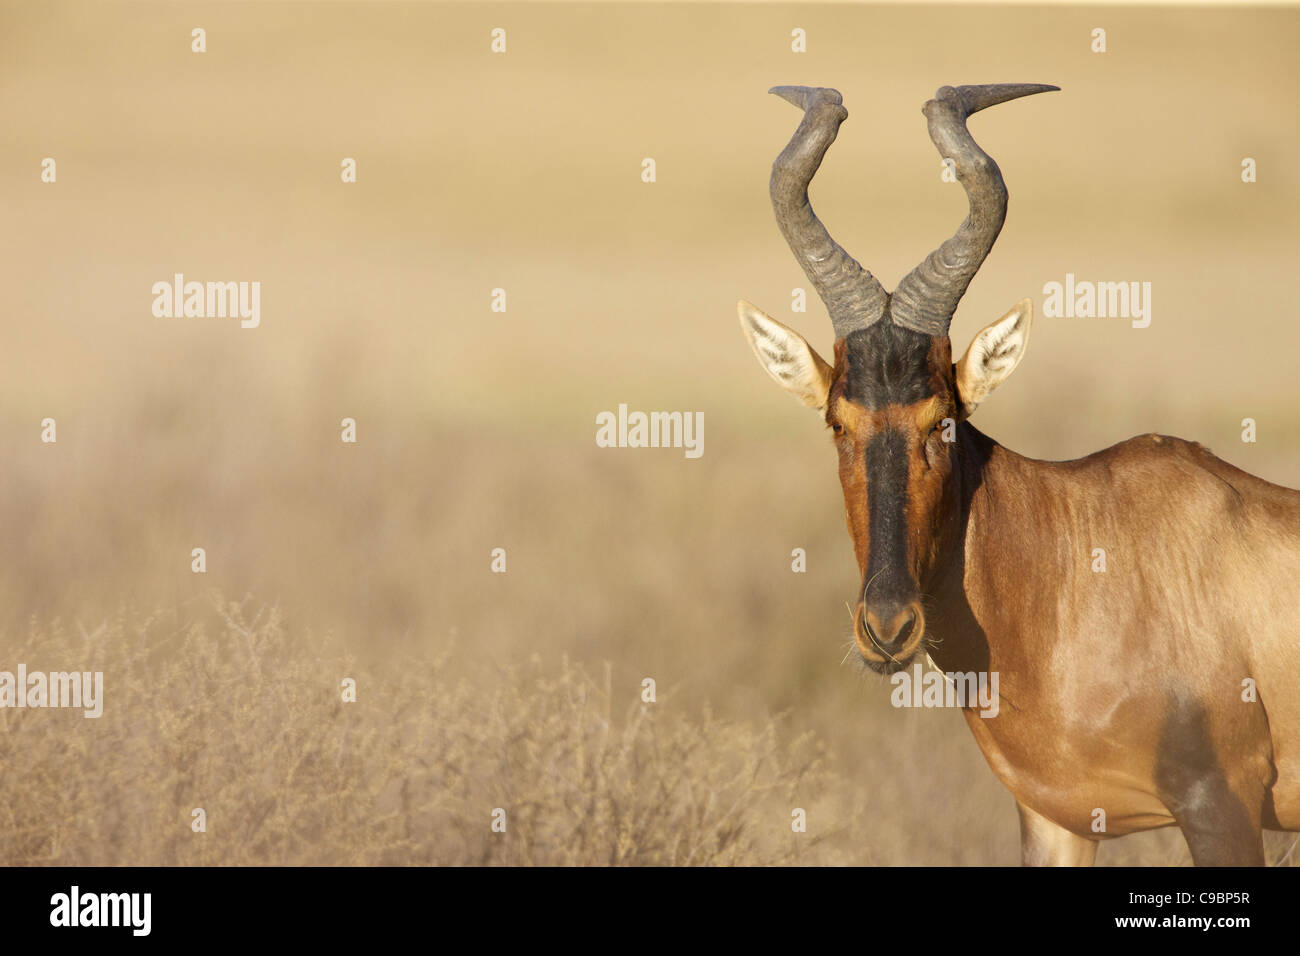 A Red Hartebeest looking at the camera, Kgalagadi Transfrontier Park, Northern Cape Province, South Africa Stock Photo